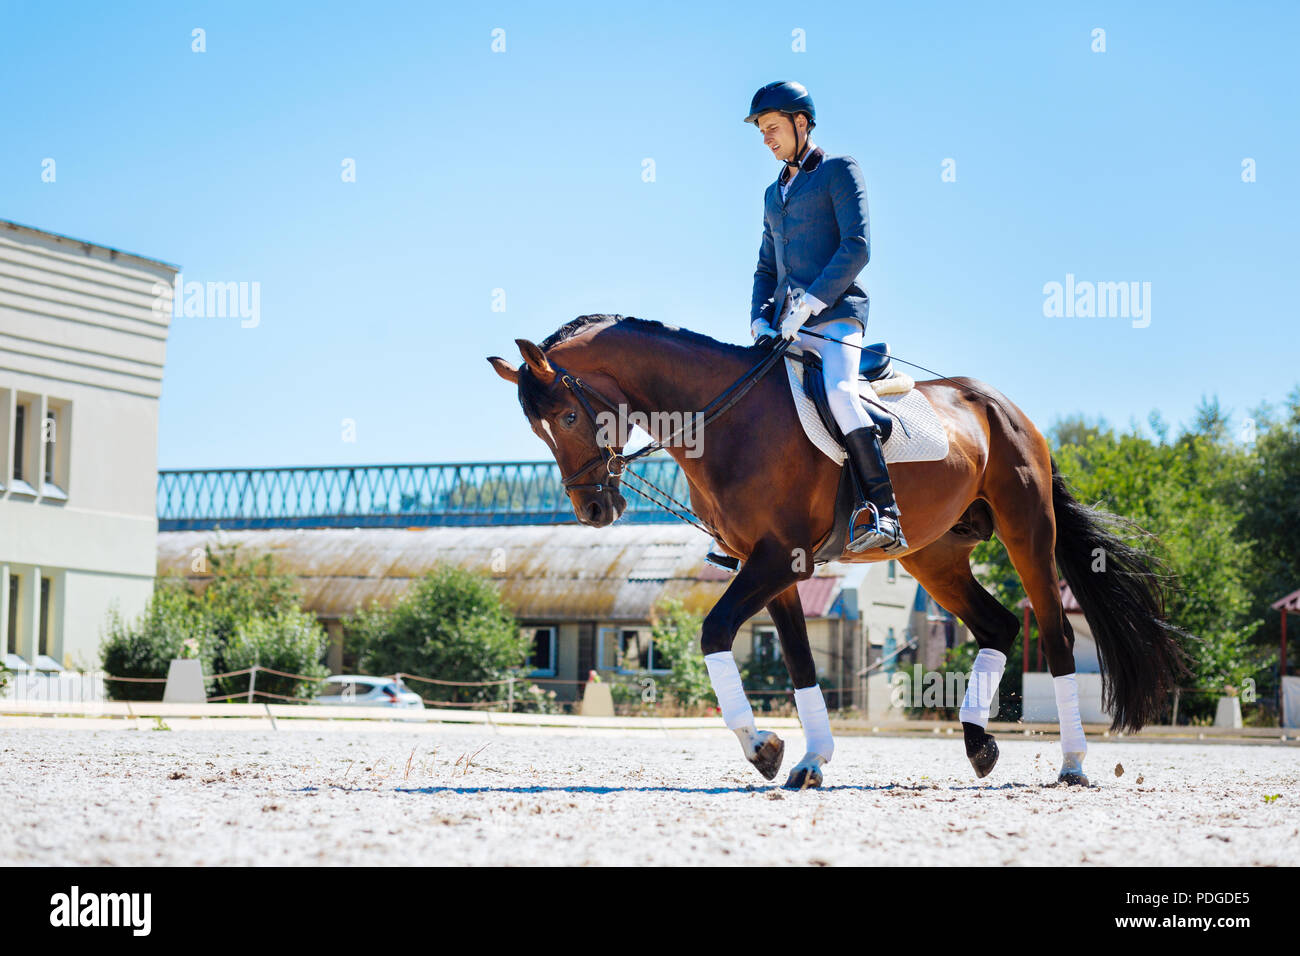 Horse man wearing helmet and riding boots looking very tired - Stock Image